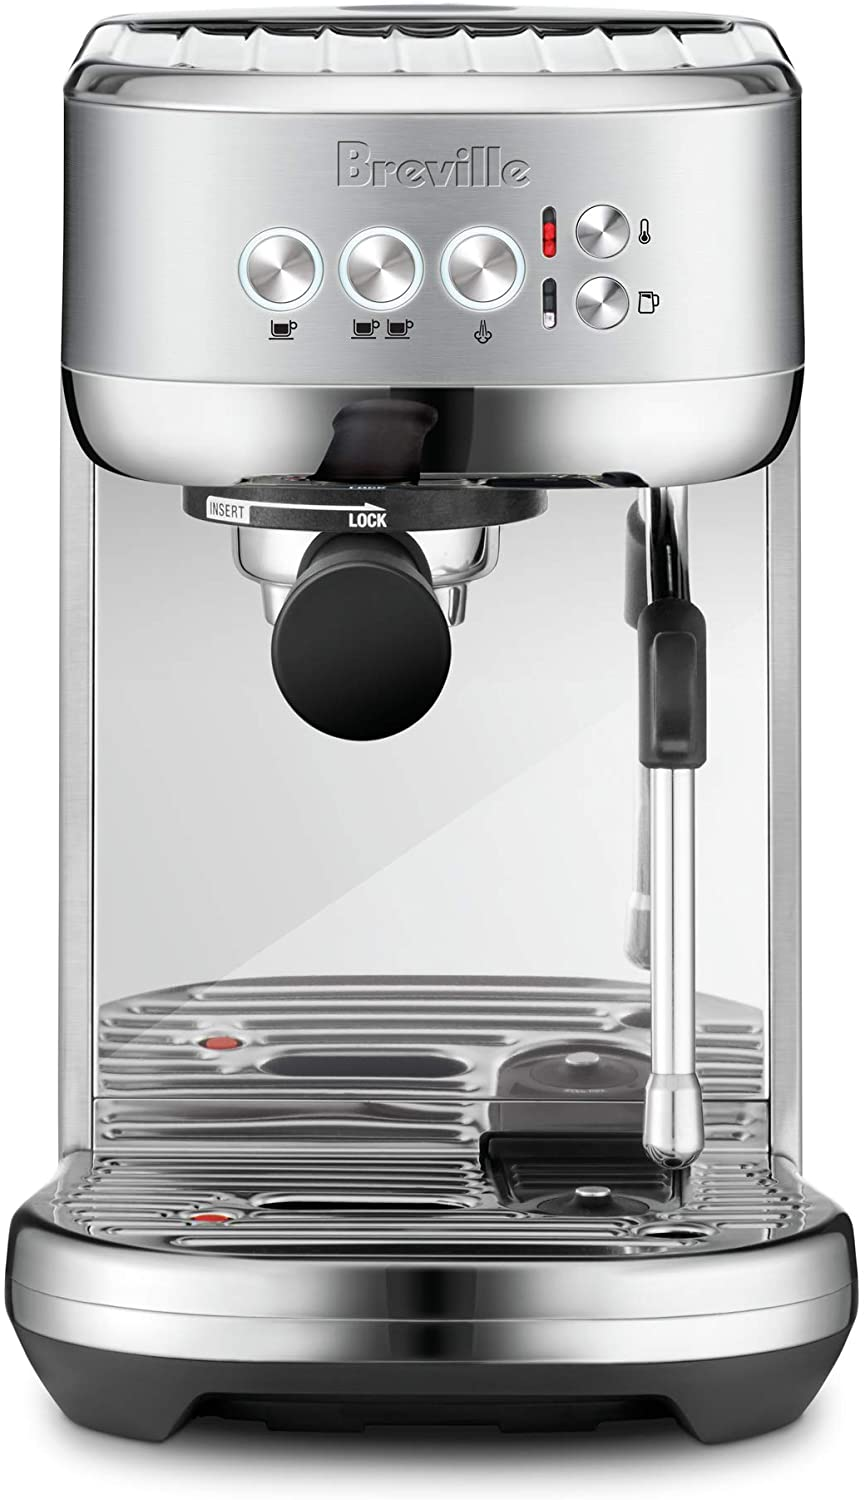 The Best Espresso Machine for Mom - 2021 Ratings & Reviews 7